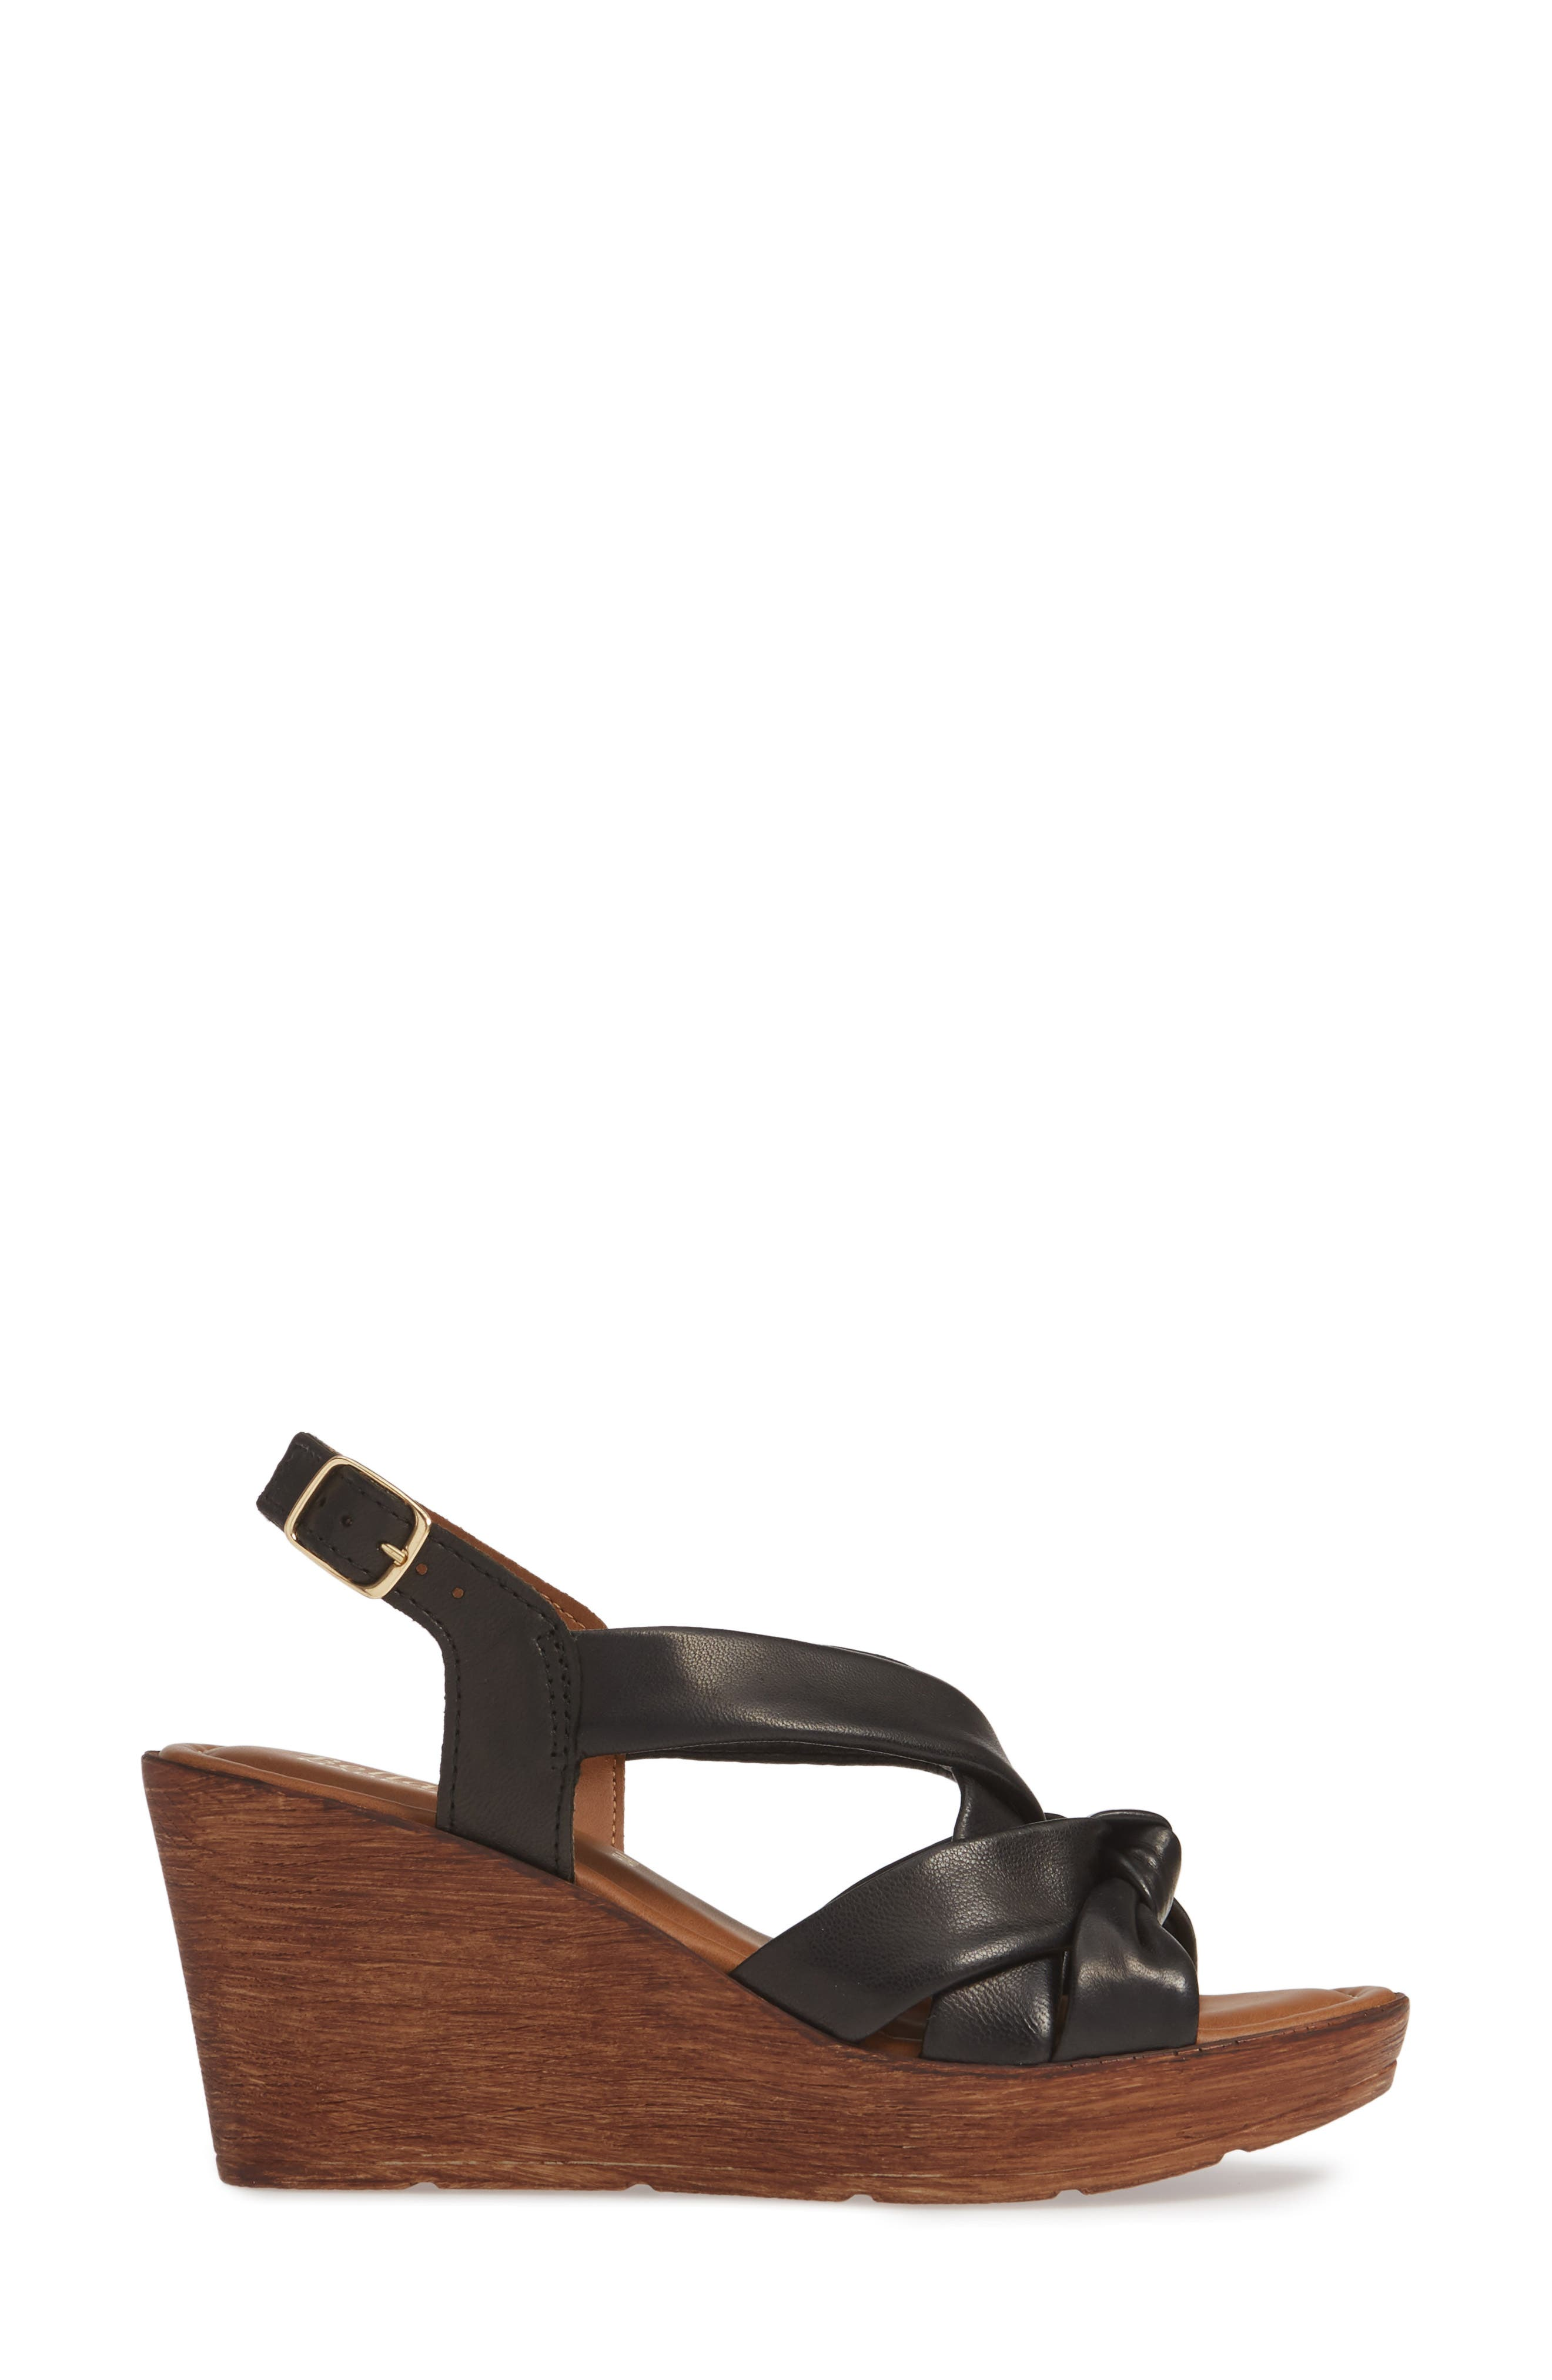 BELLA VITA, Italy Wedge Sandal, Alternate thumbnail 3, color, BLACK ITALIAN LEATHER